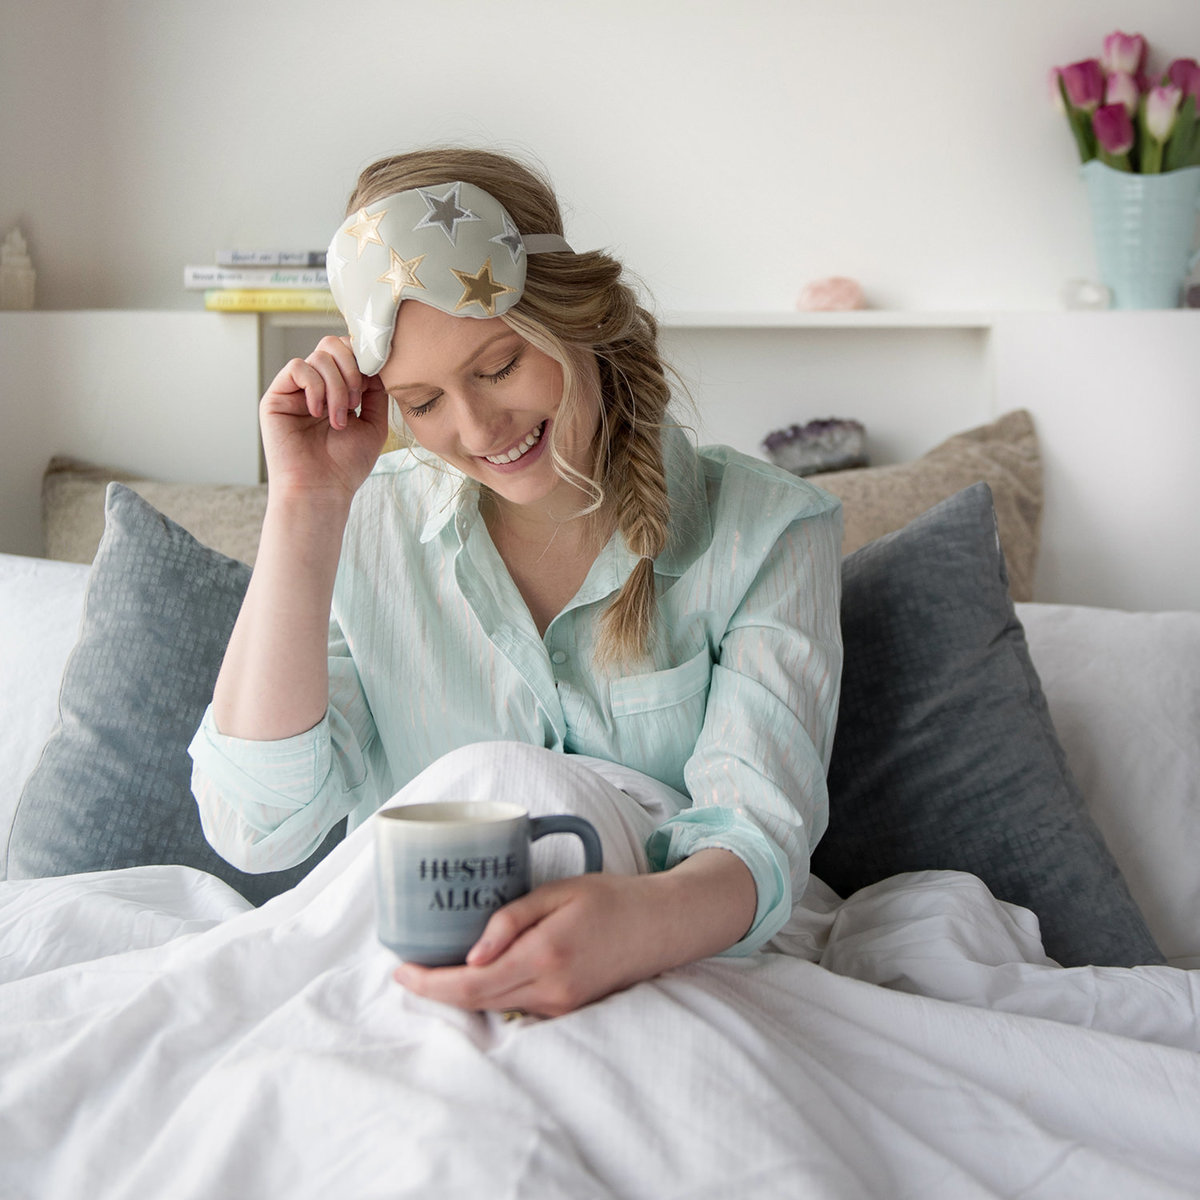 Woman in bed with coffee cup waking up